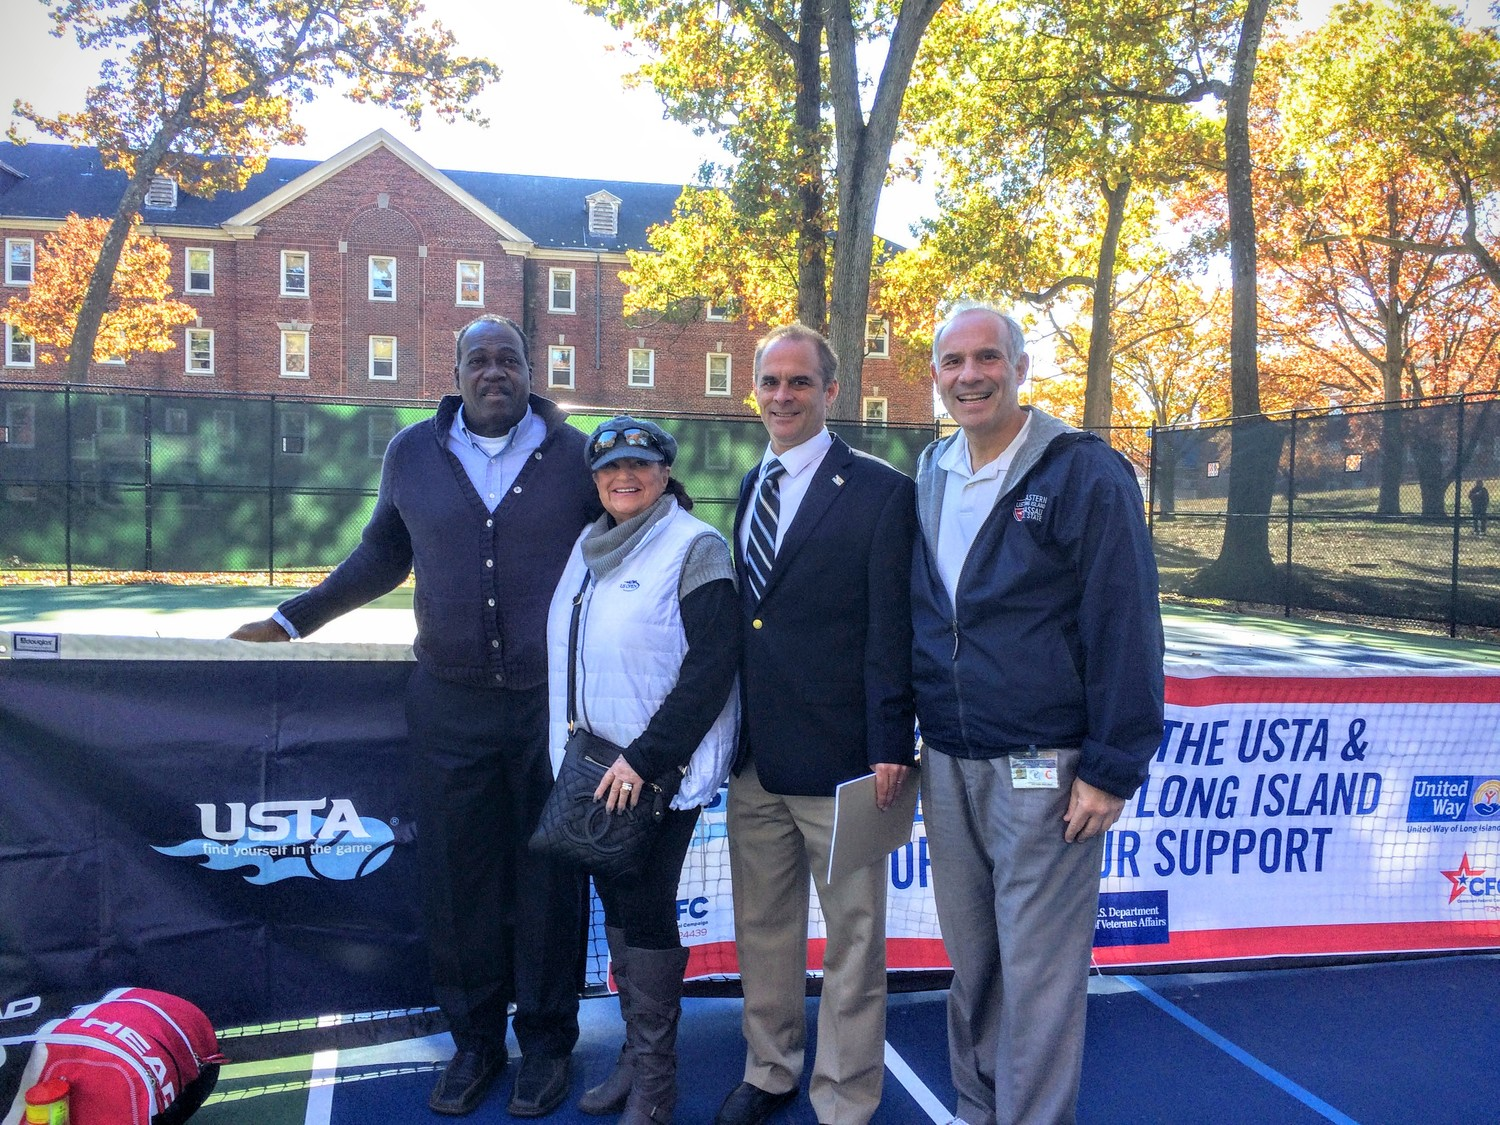 Daniel Burgess was joined by USTA Long Island Region board members Sunny Fishkind, Craig Fligstein and Mike Pavlides at the dedication of the renovated tennis courts at the Northport VA Medical Center.